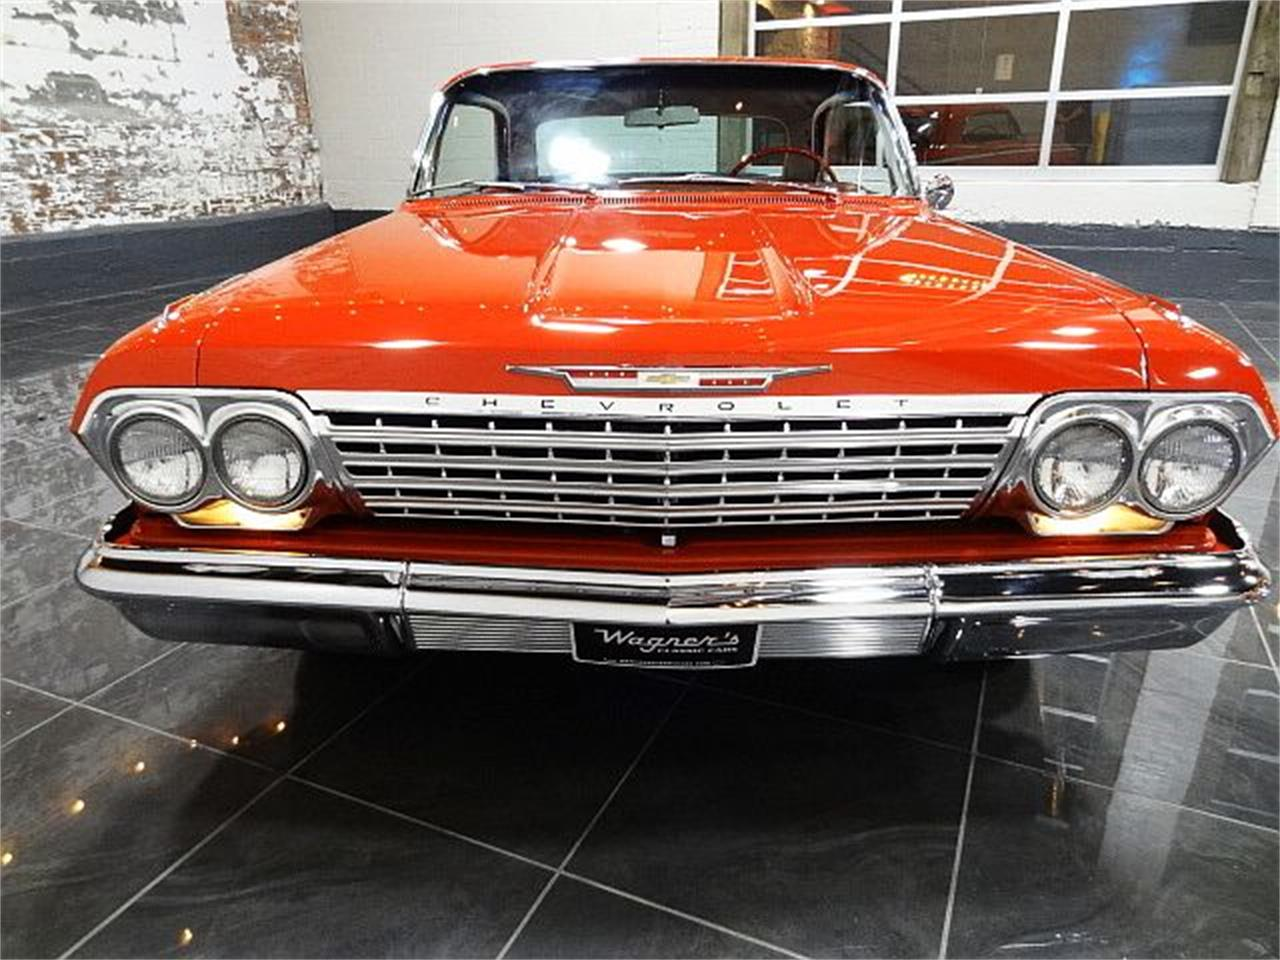 Large Picture of '62 Chevrolet Impala located in Bonner Springs Kansas - $54,000.00 Offered by Wagners Classic Cars - R2UP